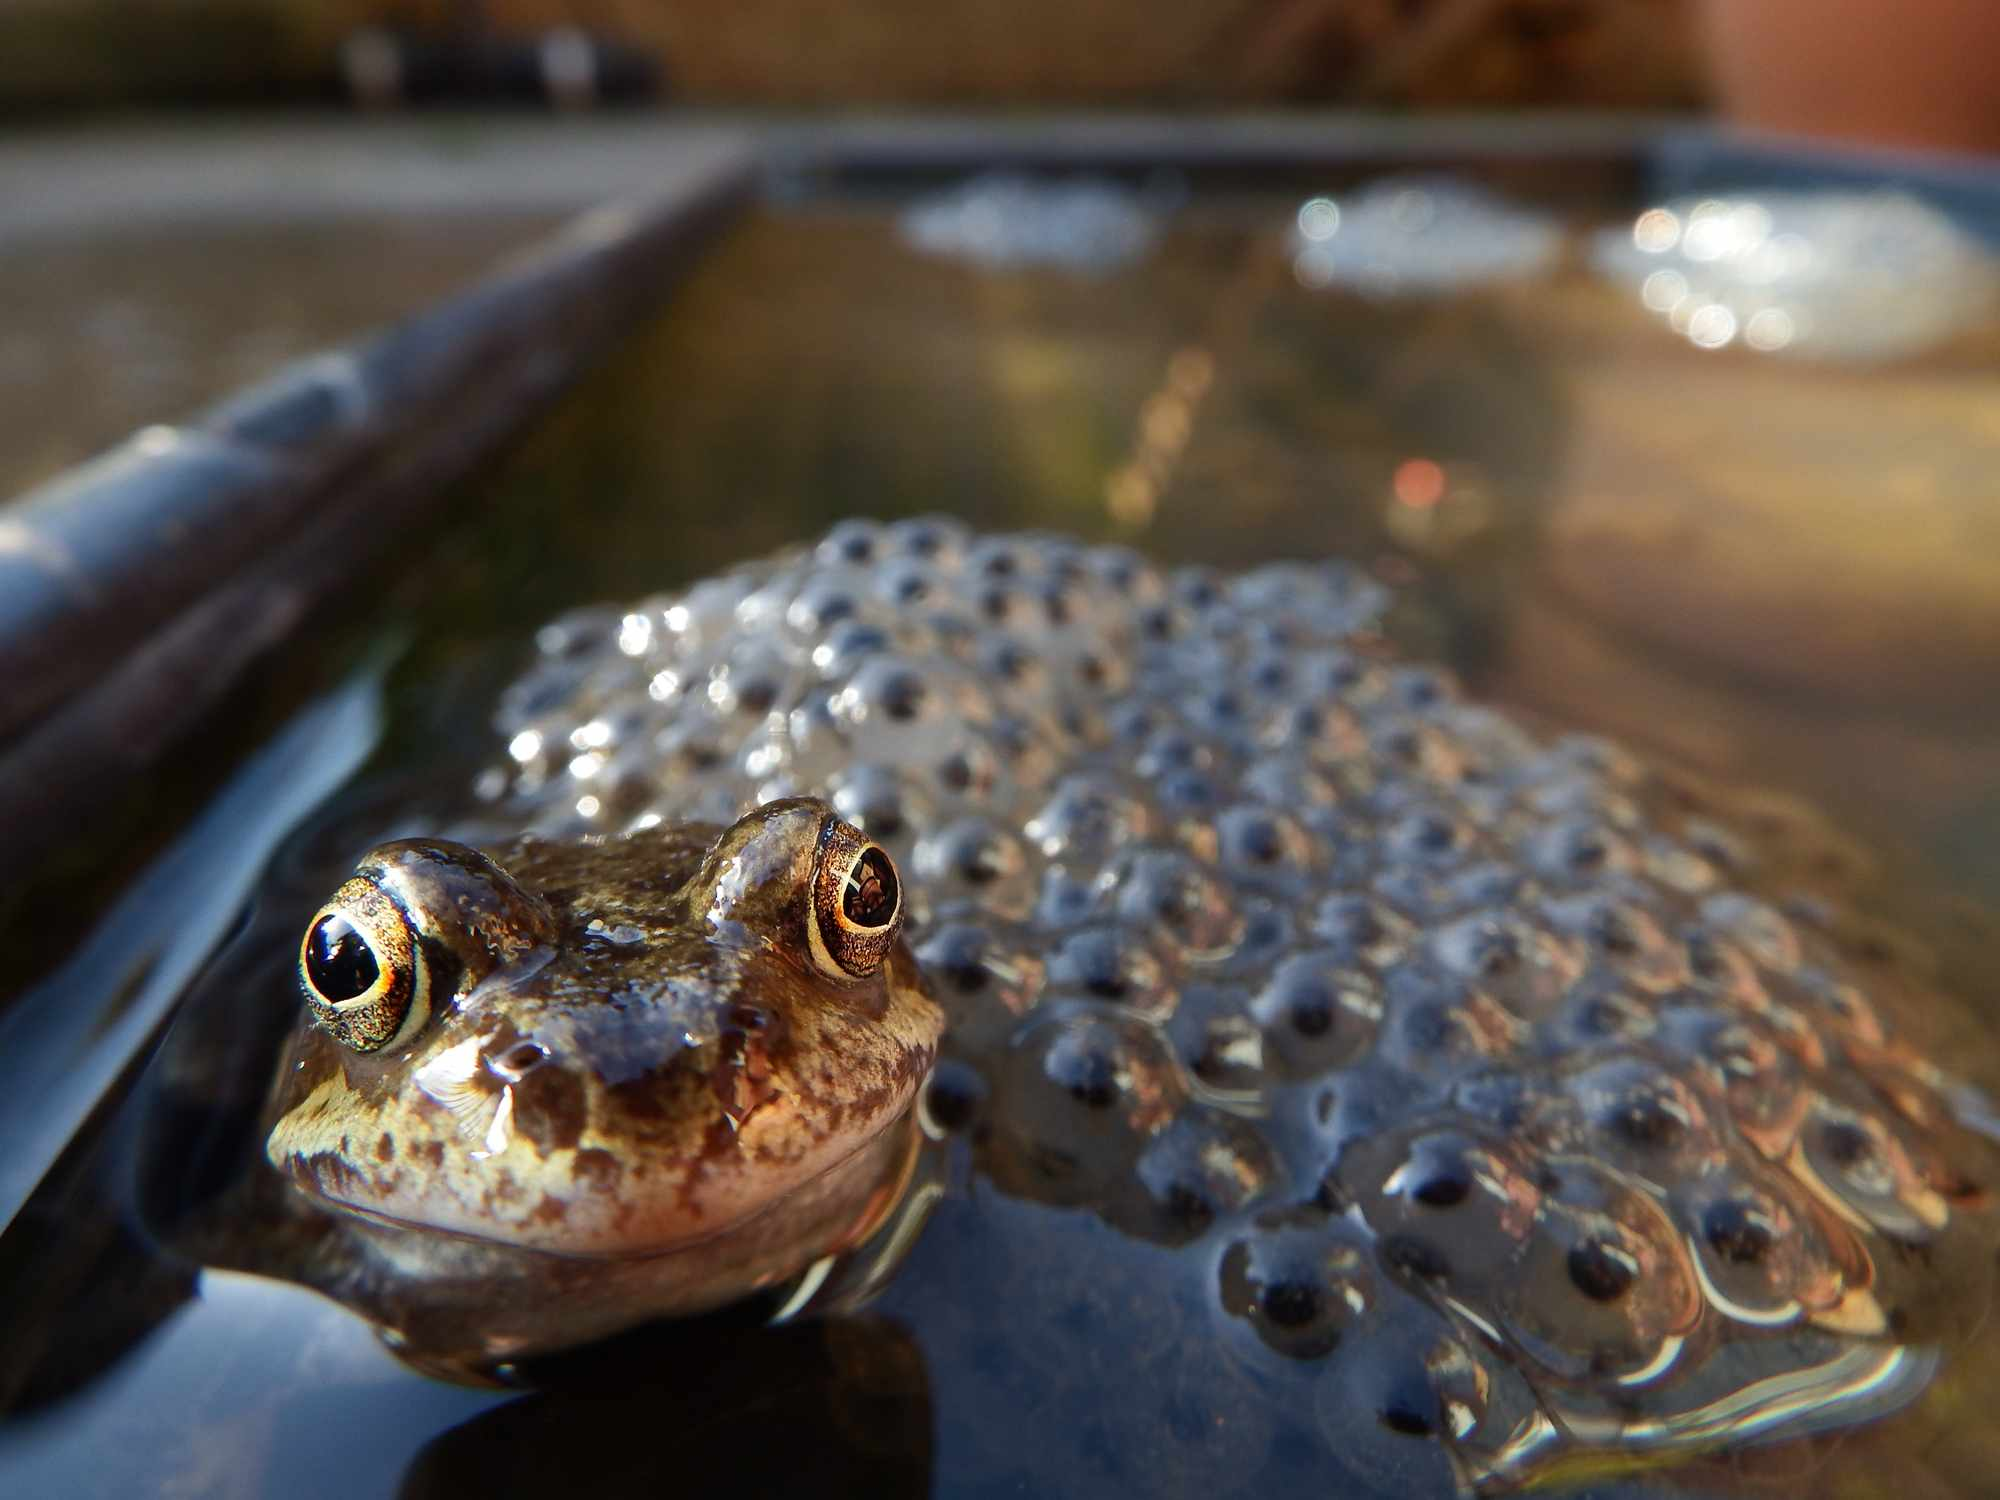 Frog with frogspawn. © Richard Warner/EyeEm/Getty